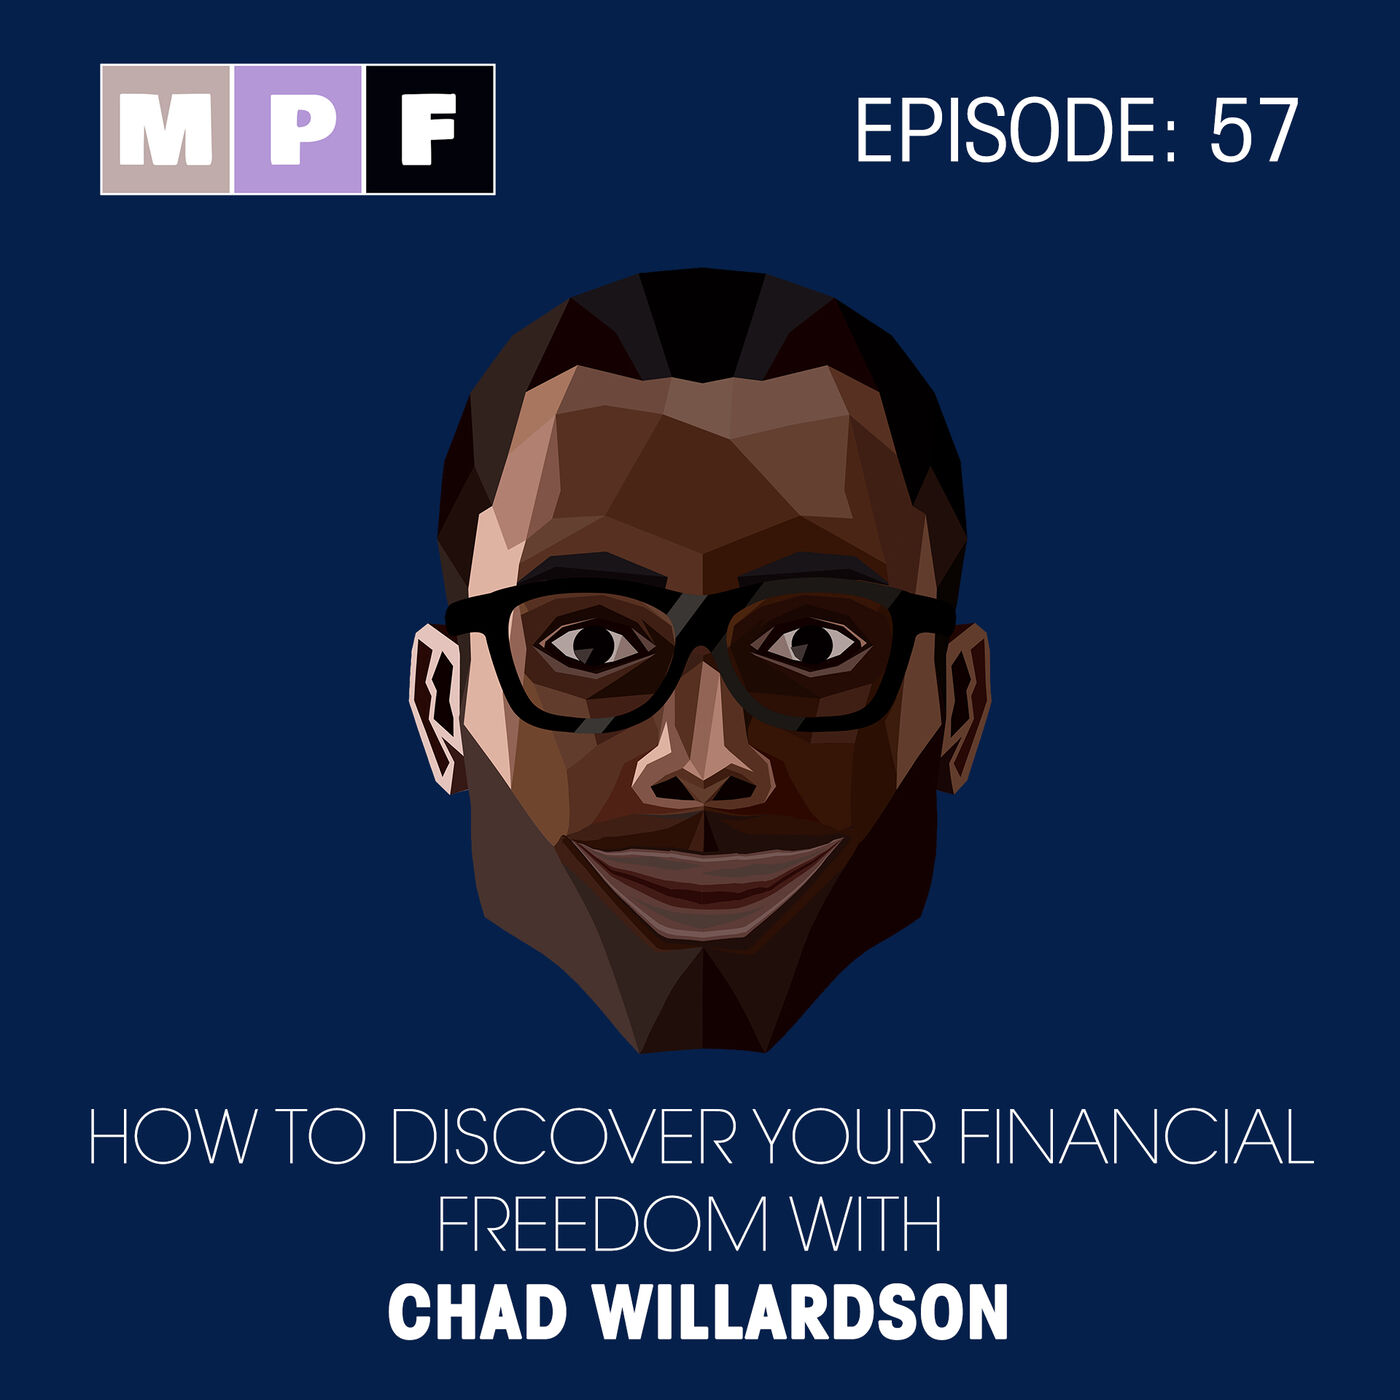 How to Discover your Financial Freedom with Chad Willardson